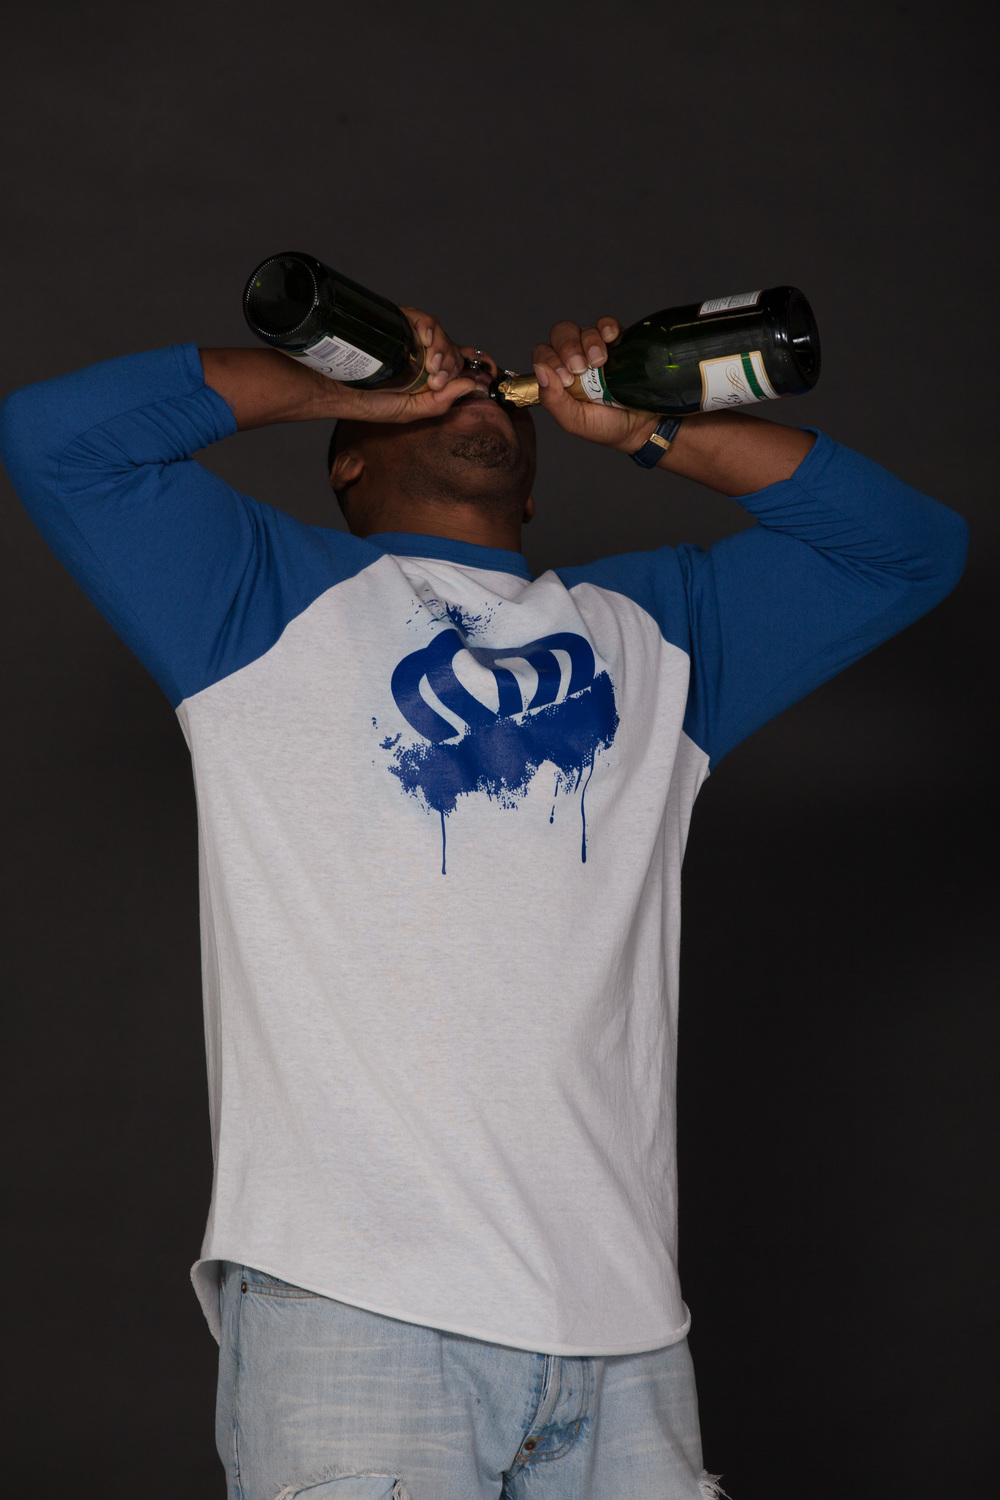 Charlotte crown graffiti shirt looks good on model pippin bottles.